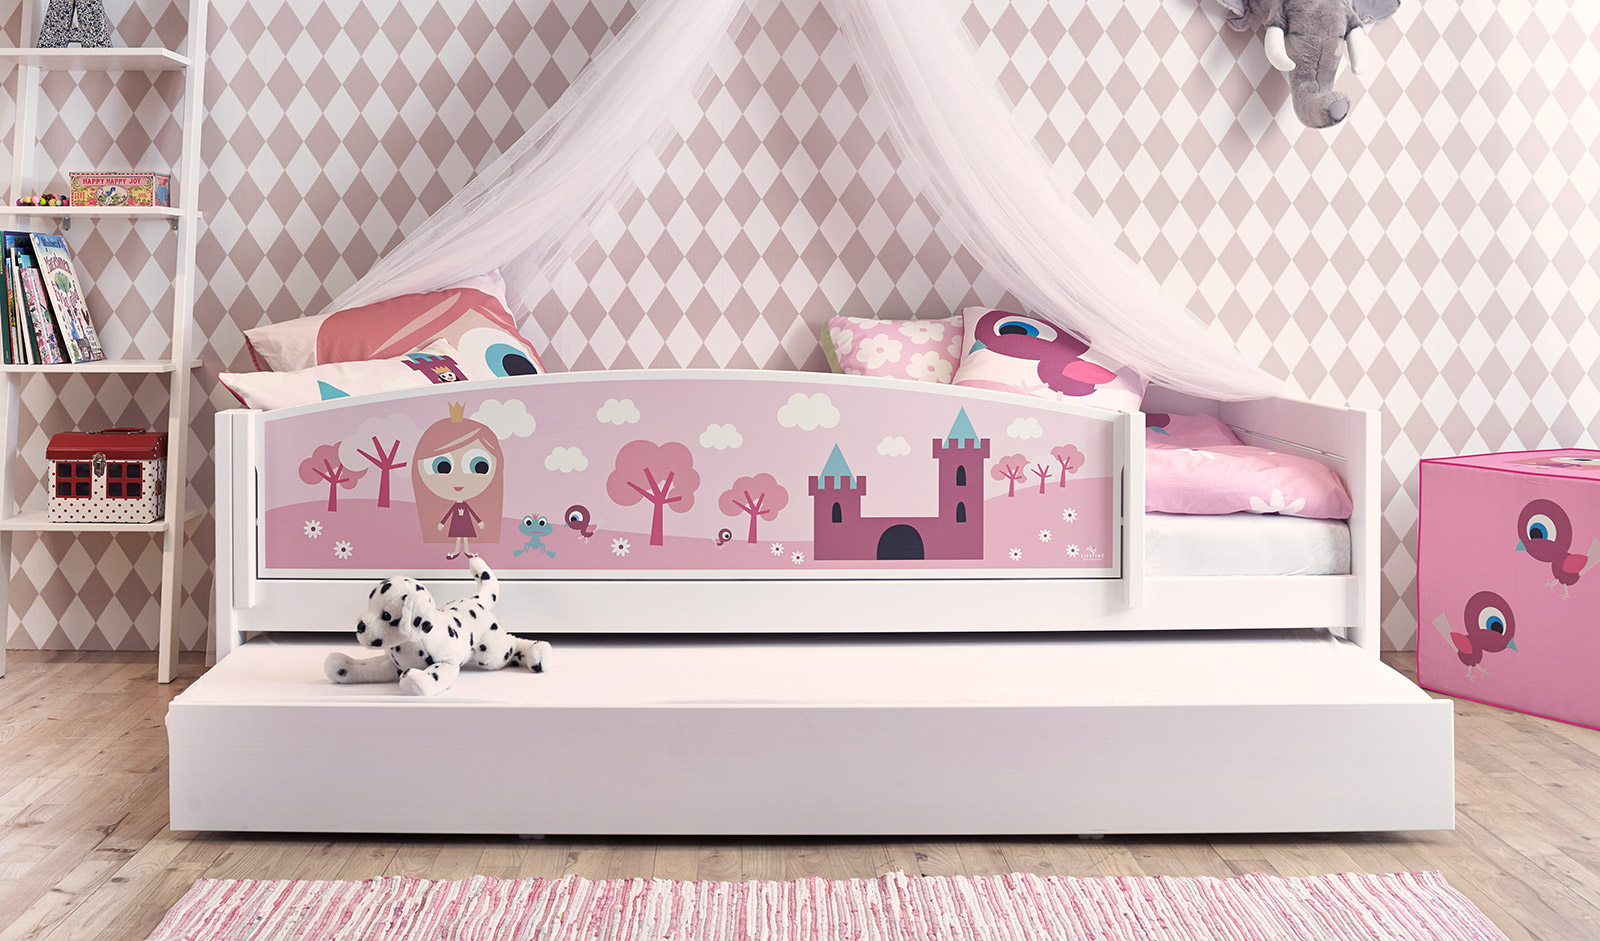 himmelbett kinderbett prinzessin. Black Bedroom Furniture Sets. Home Design Ideas